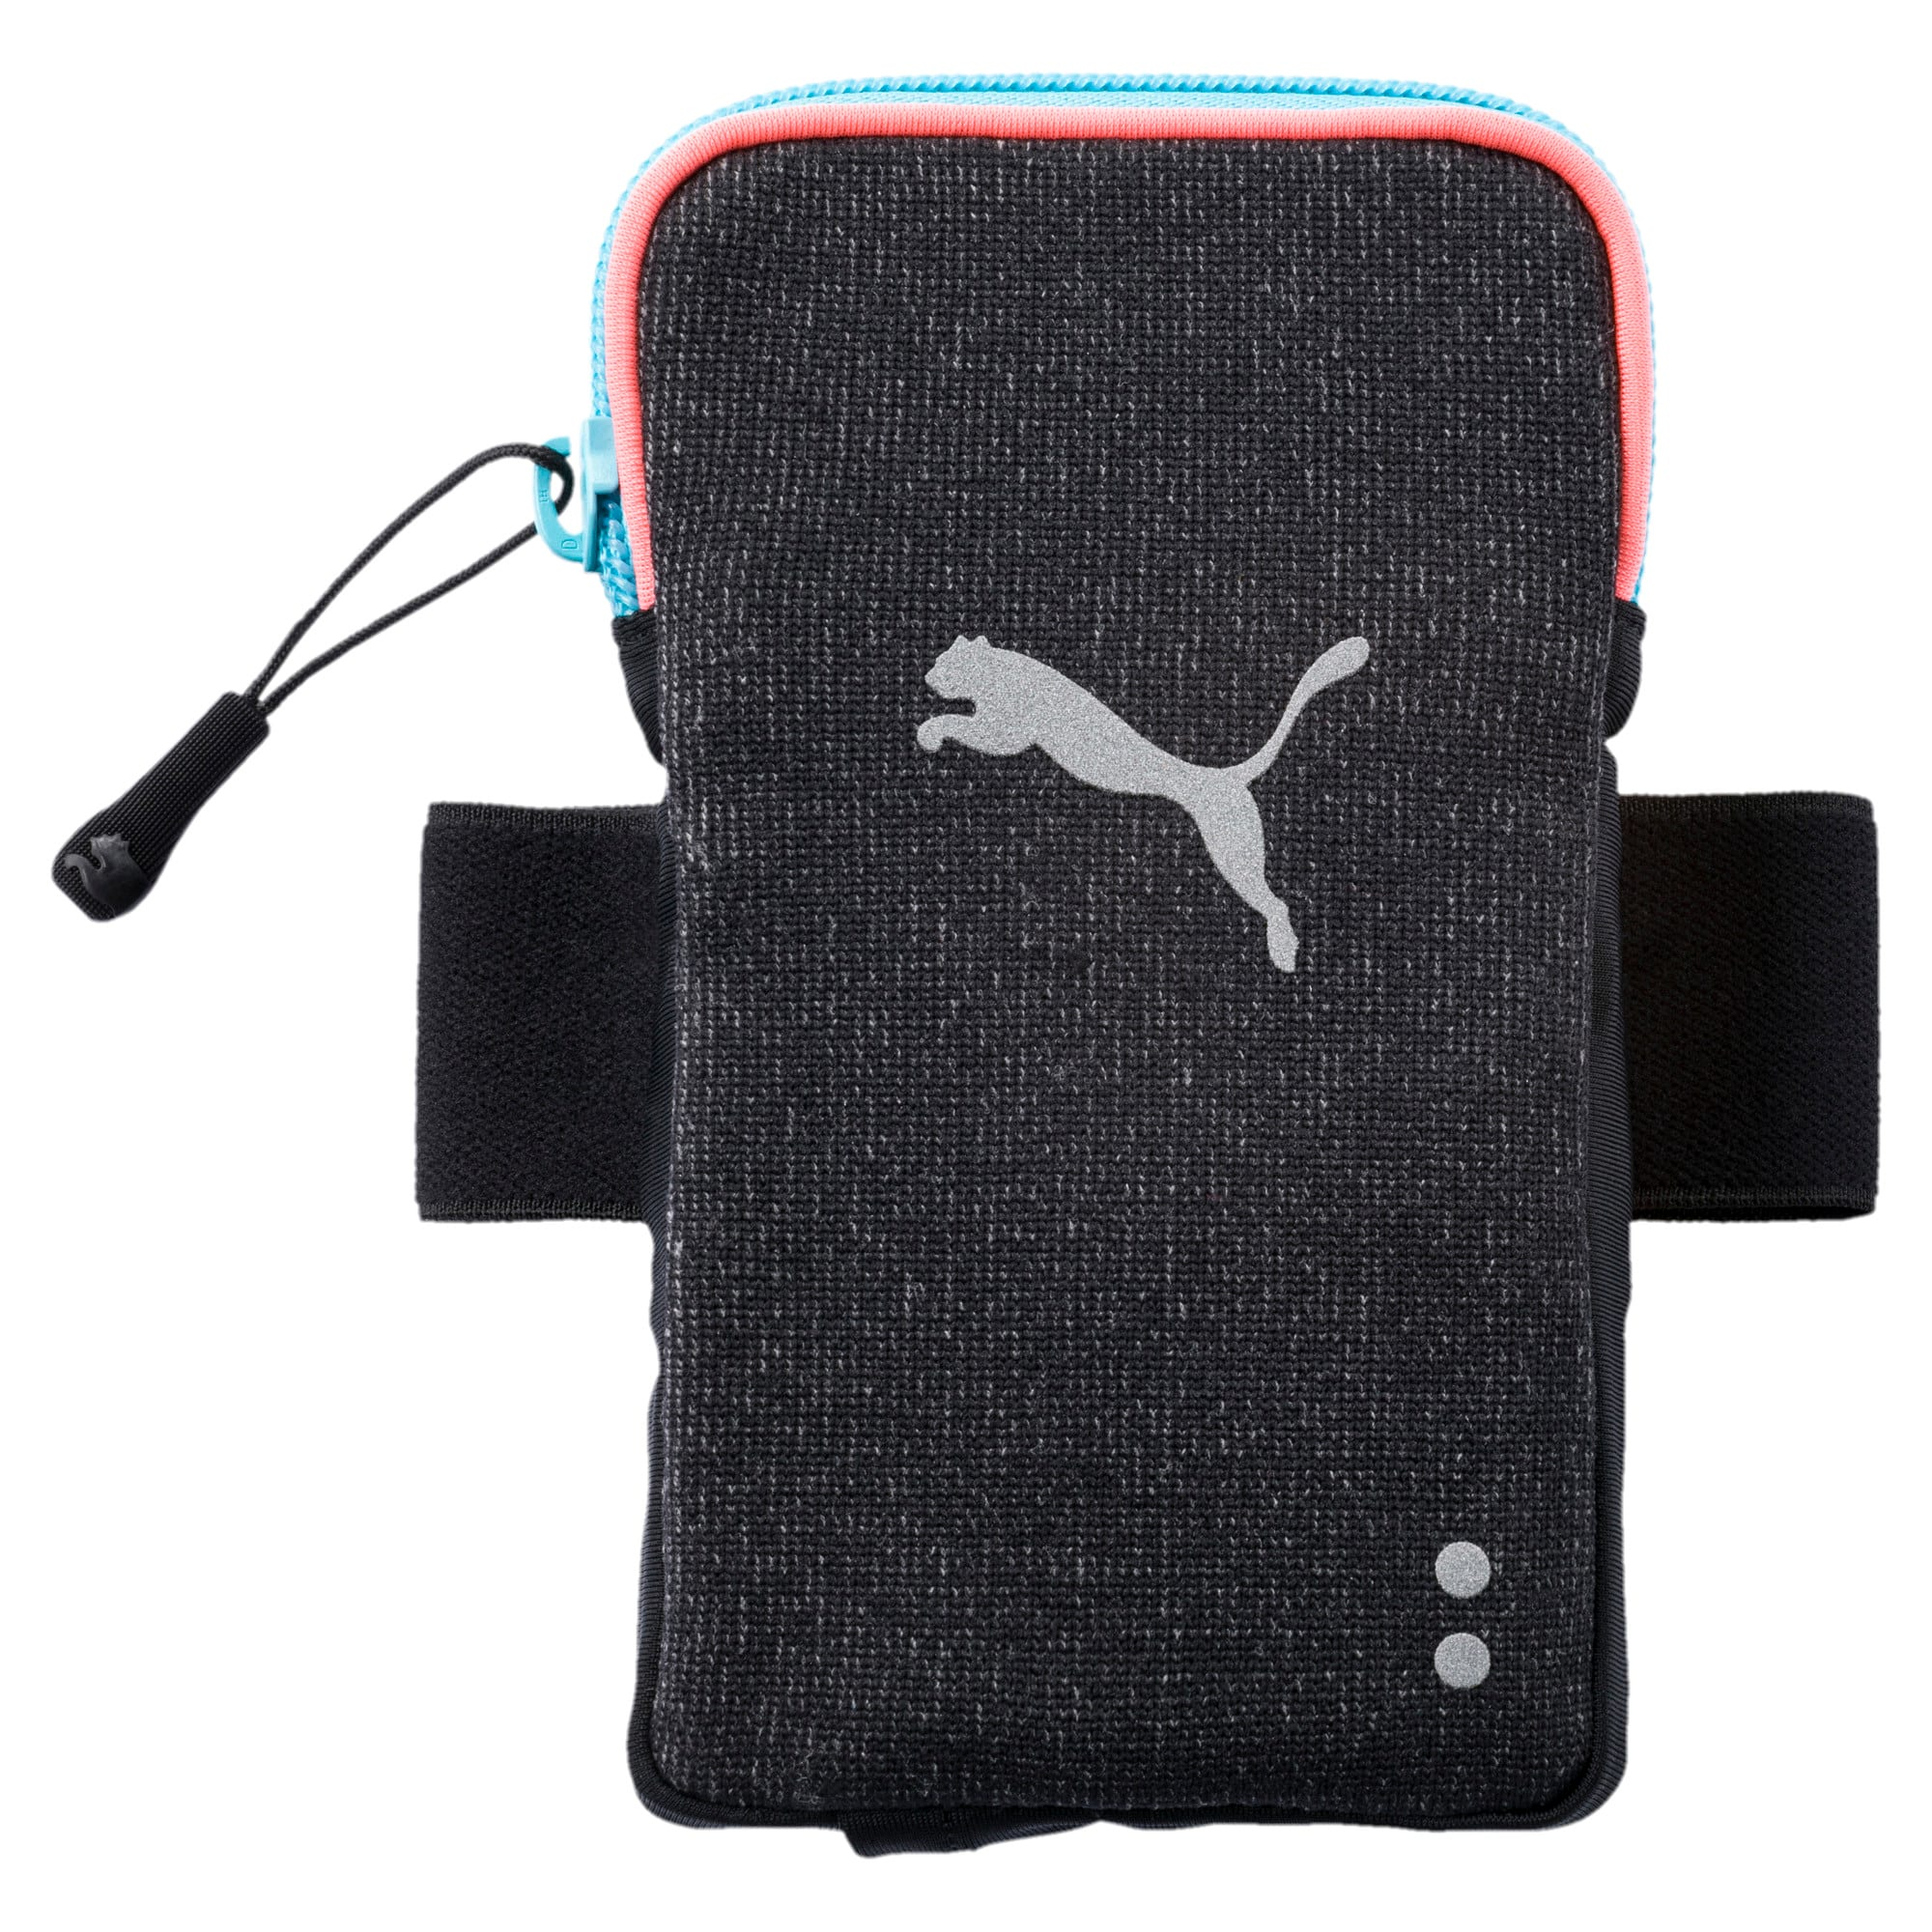 Thumbnail 1 of Running Arm Pocket, Puma Black-Peach-turquoise, medium-IND